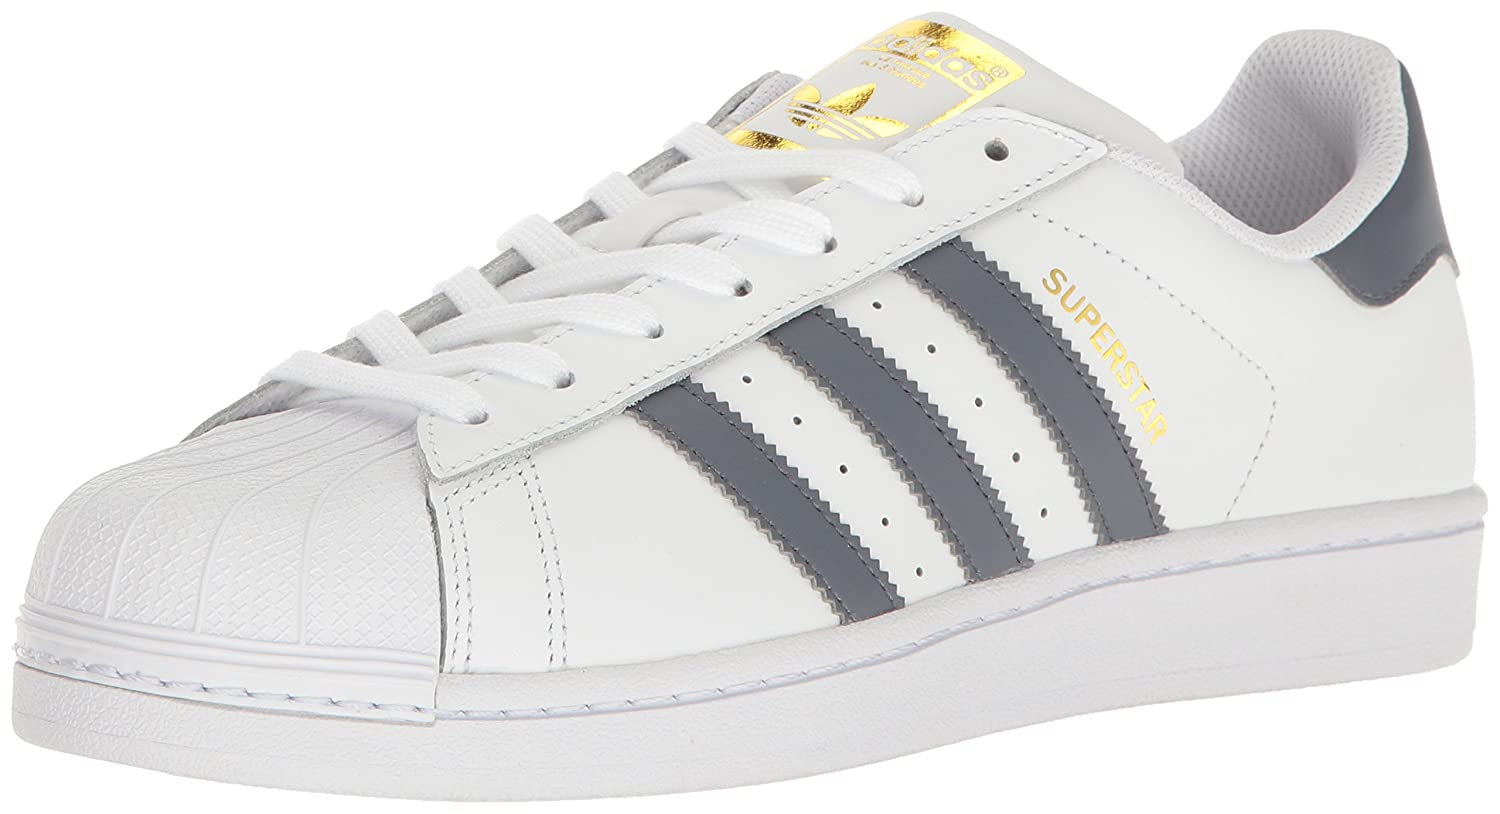 check out 9e1ab bcbb2 Amazon.com   adidas Originals Women s Superstar Shoes Running   Fashion  Sneakers